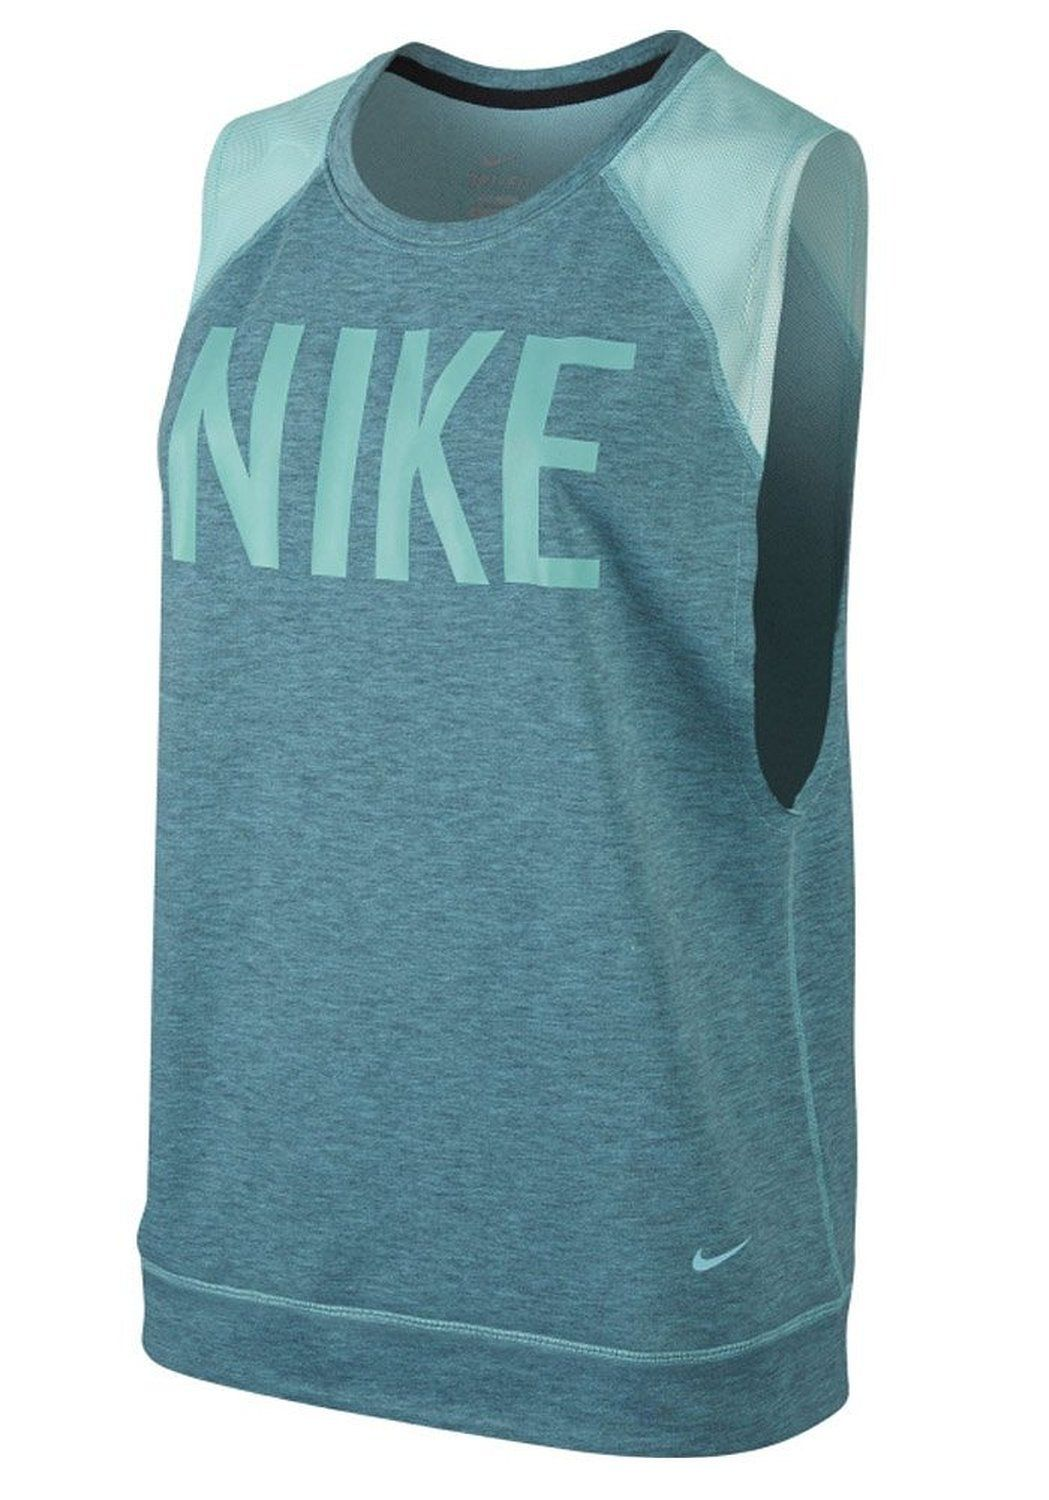 Nike Women's Dri-Fit Sleeveless Graphic Training Top-Mint Green-Medium. 100% polyester. Brushed interior. Mesh at shoulders. Flat seams. Imported.